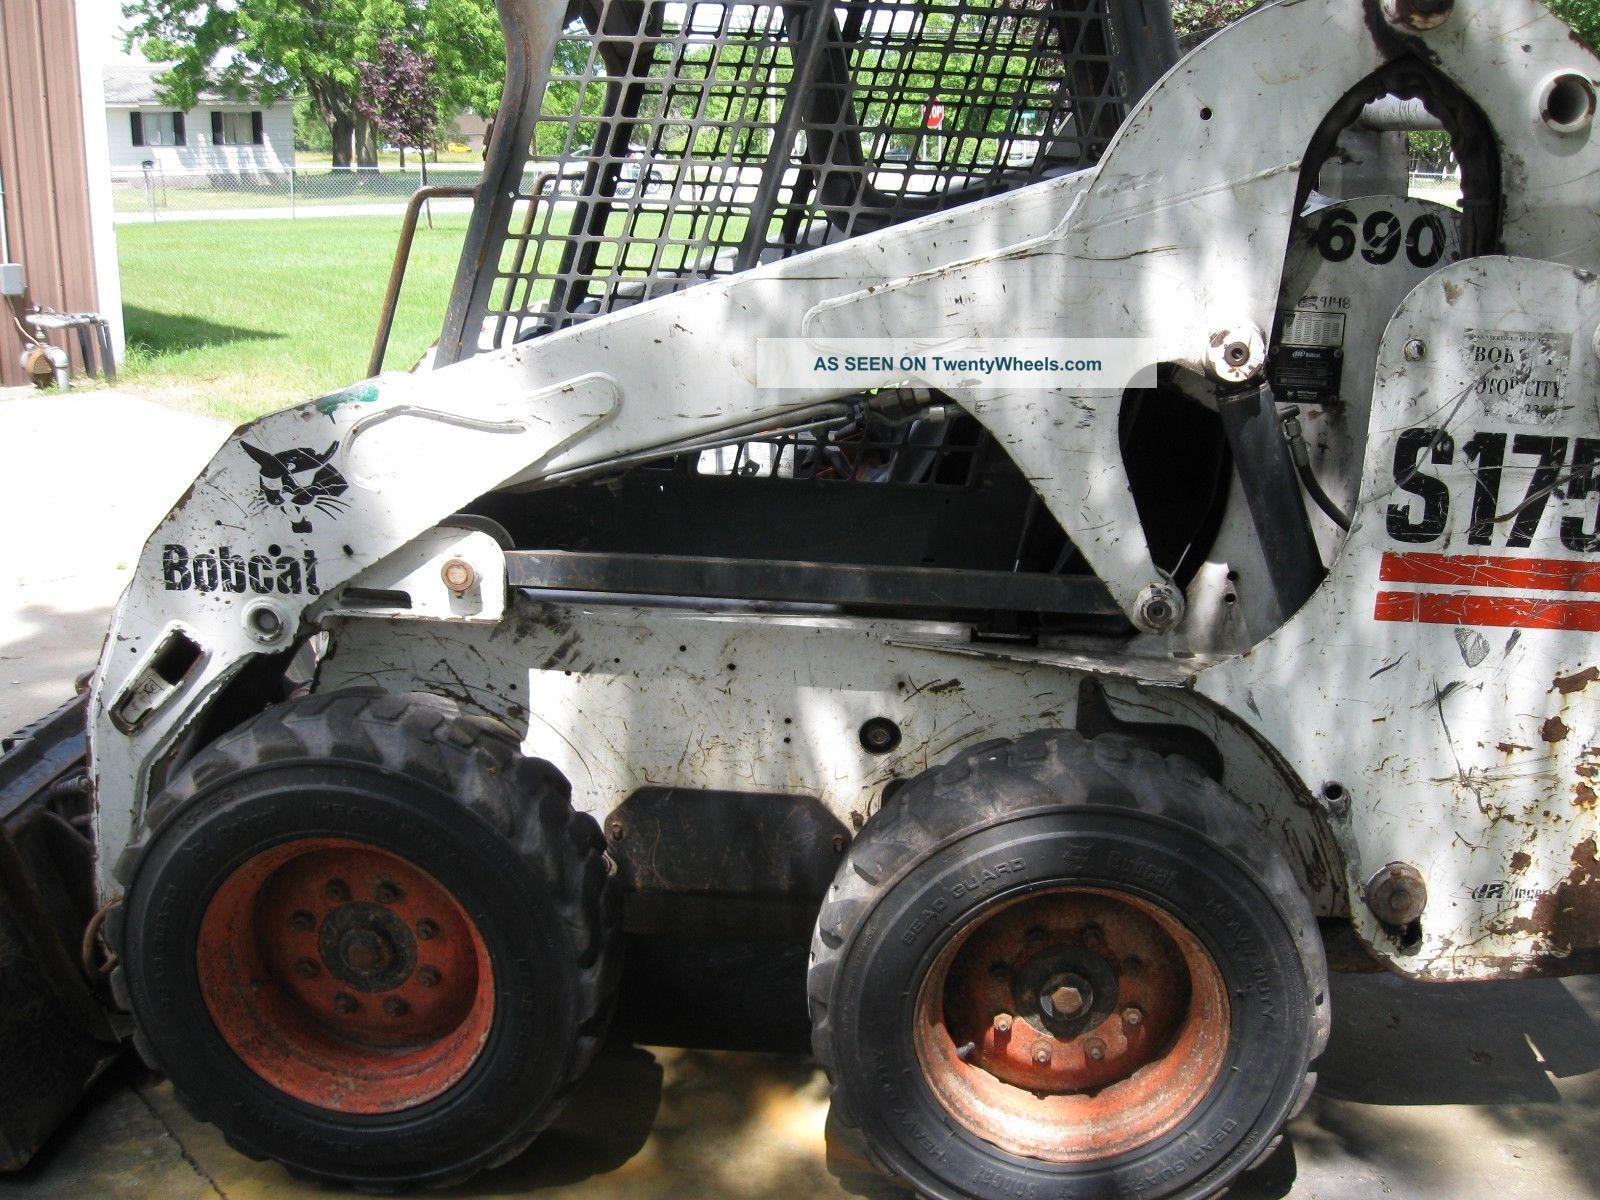 Bobcat S175 Skid Steer Loader 2006 Heavy Equipment Skid Steer Loaders photo